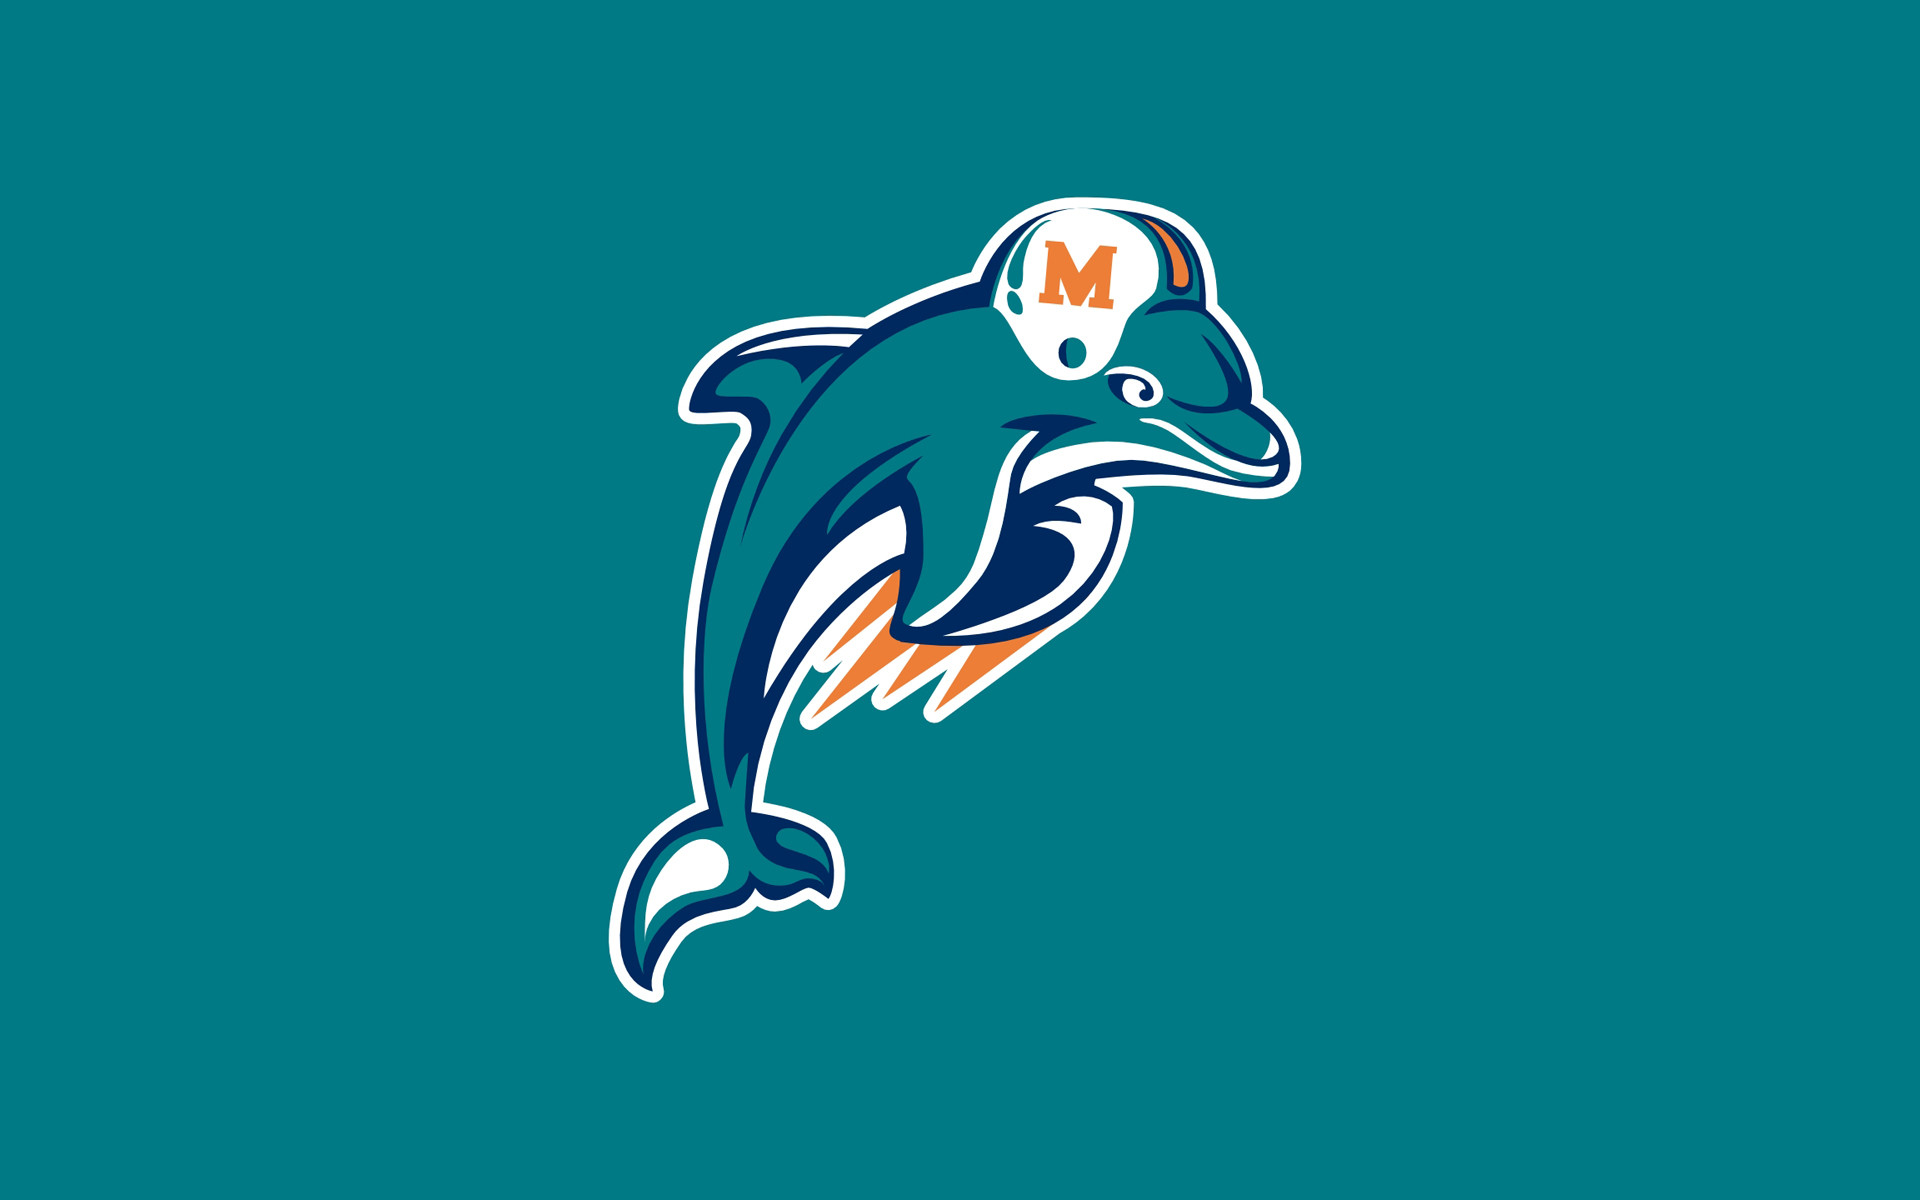 Download Miami Dolphins Wallpaper 14703 px High .